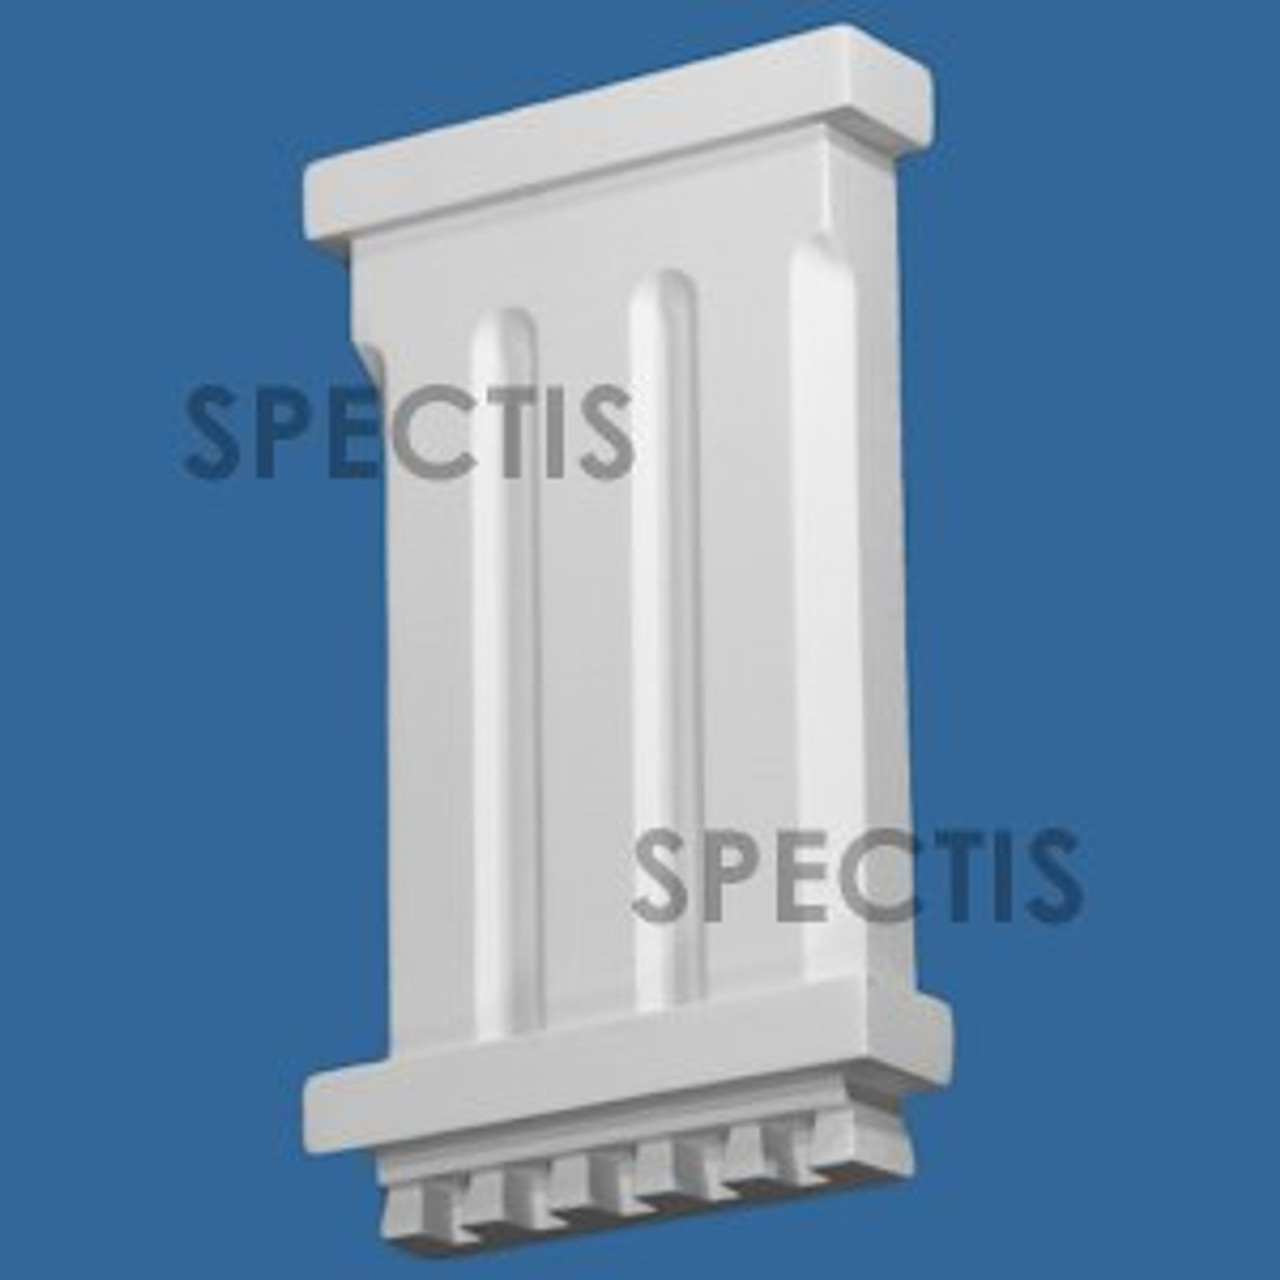 """BL2983 Spectis Eave Block or Bracket 6""""W x 10.13""""H x 1.38"""" Projection"""